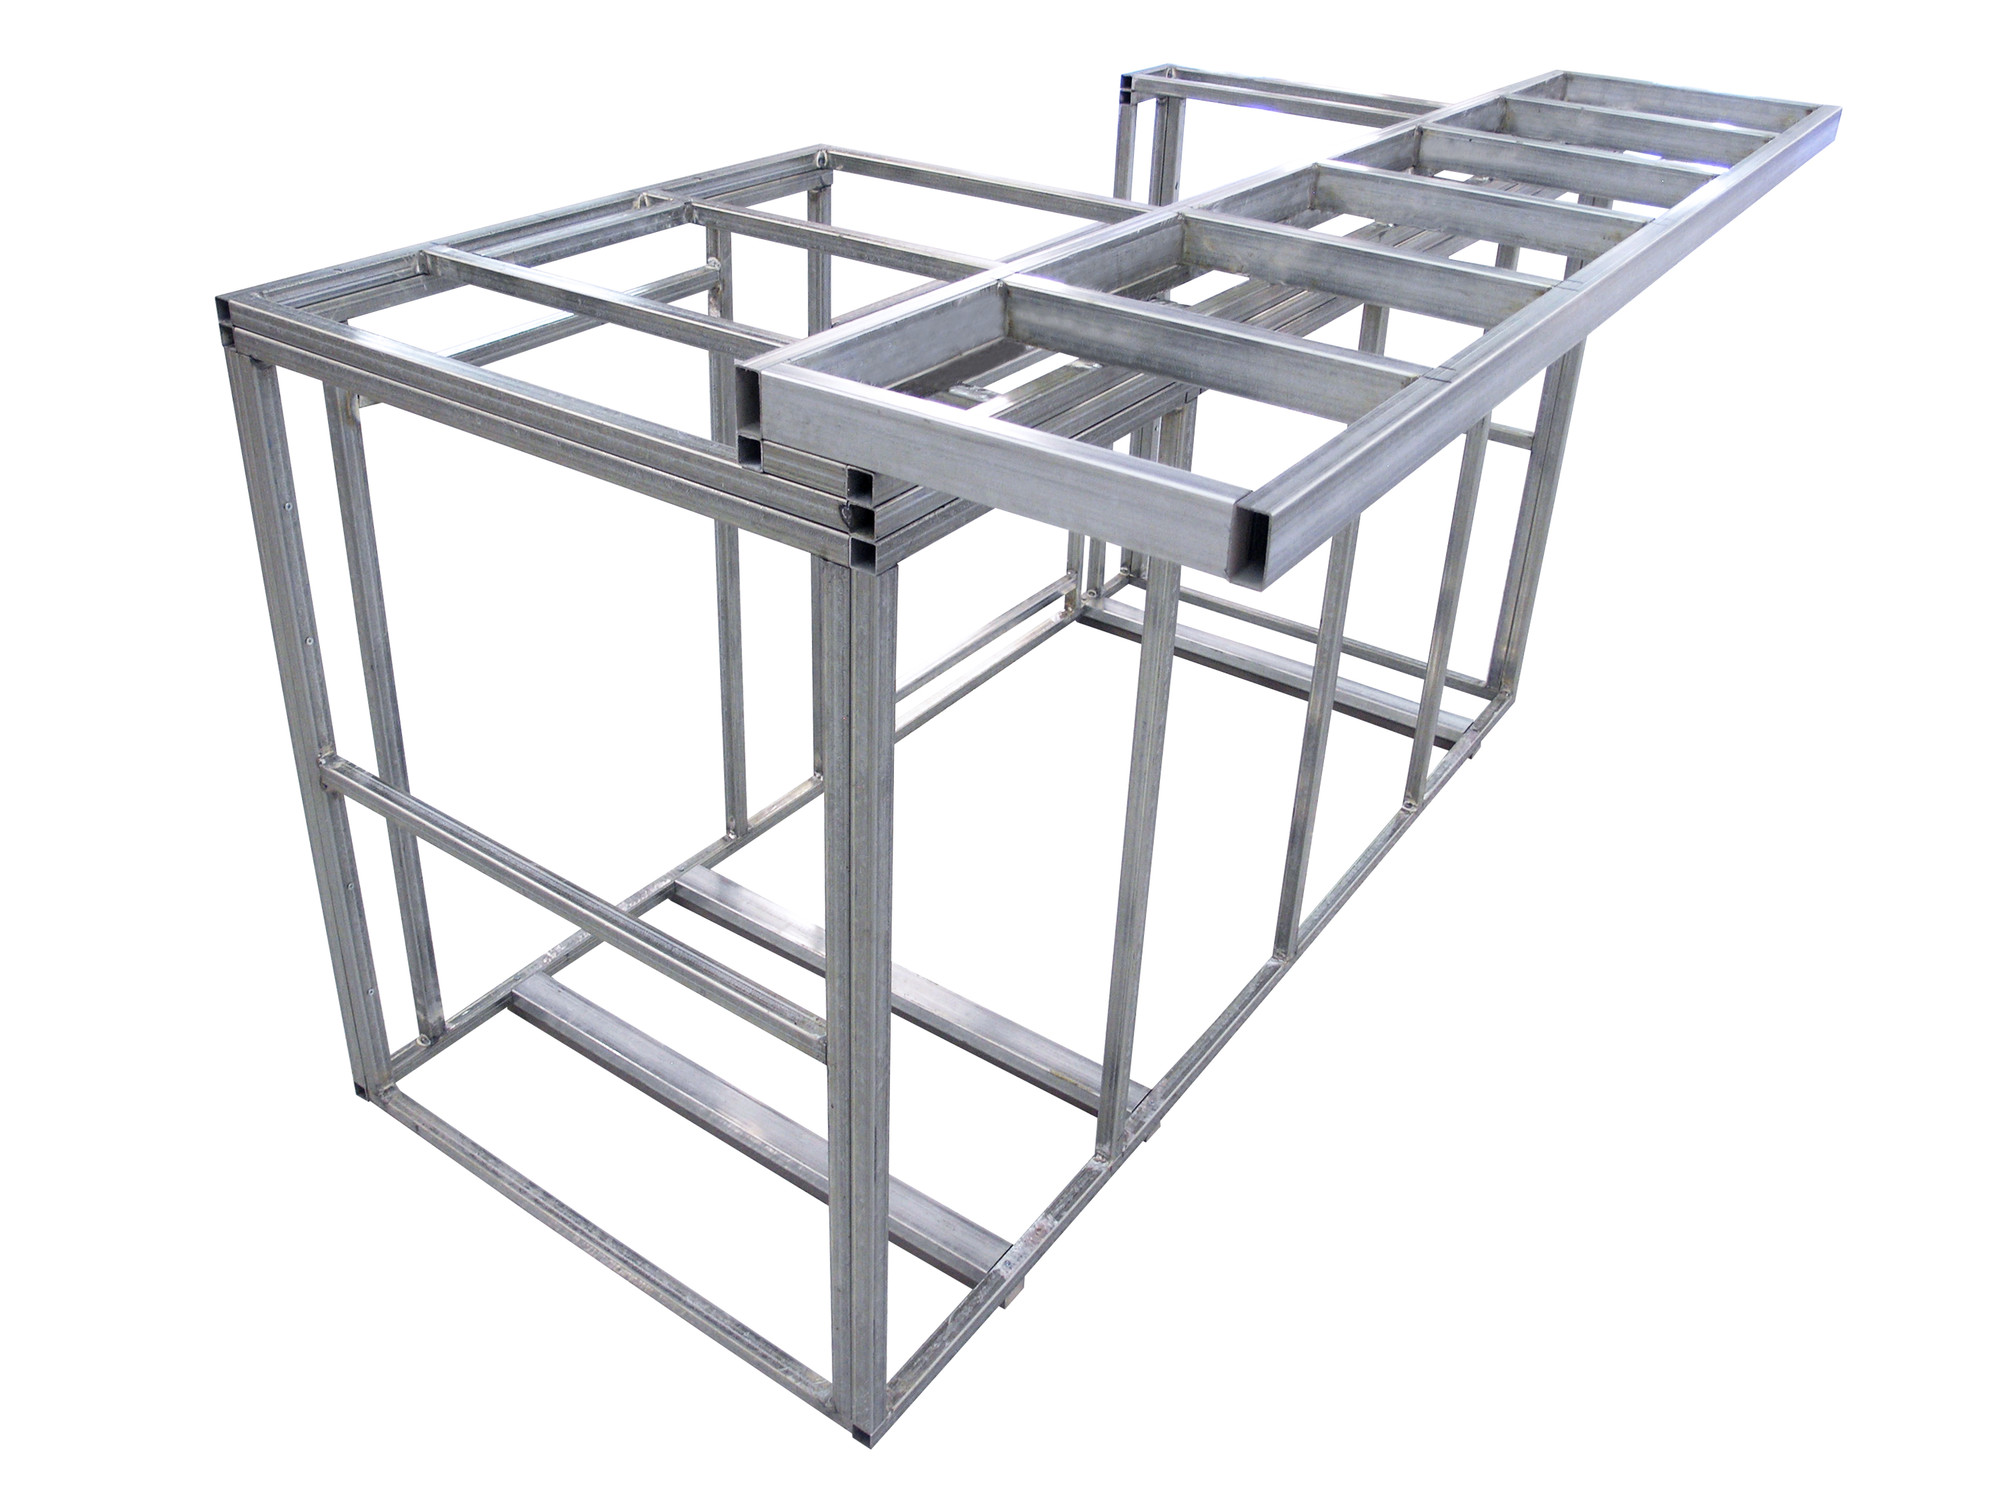 outdoor kitchen frame kit photo - 1